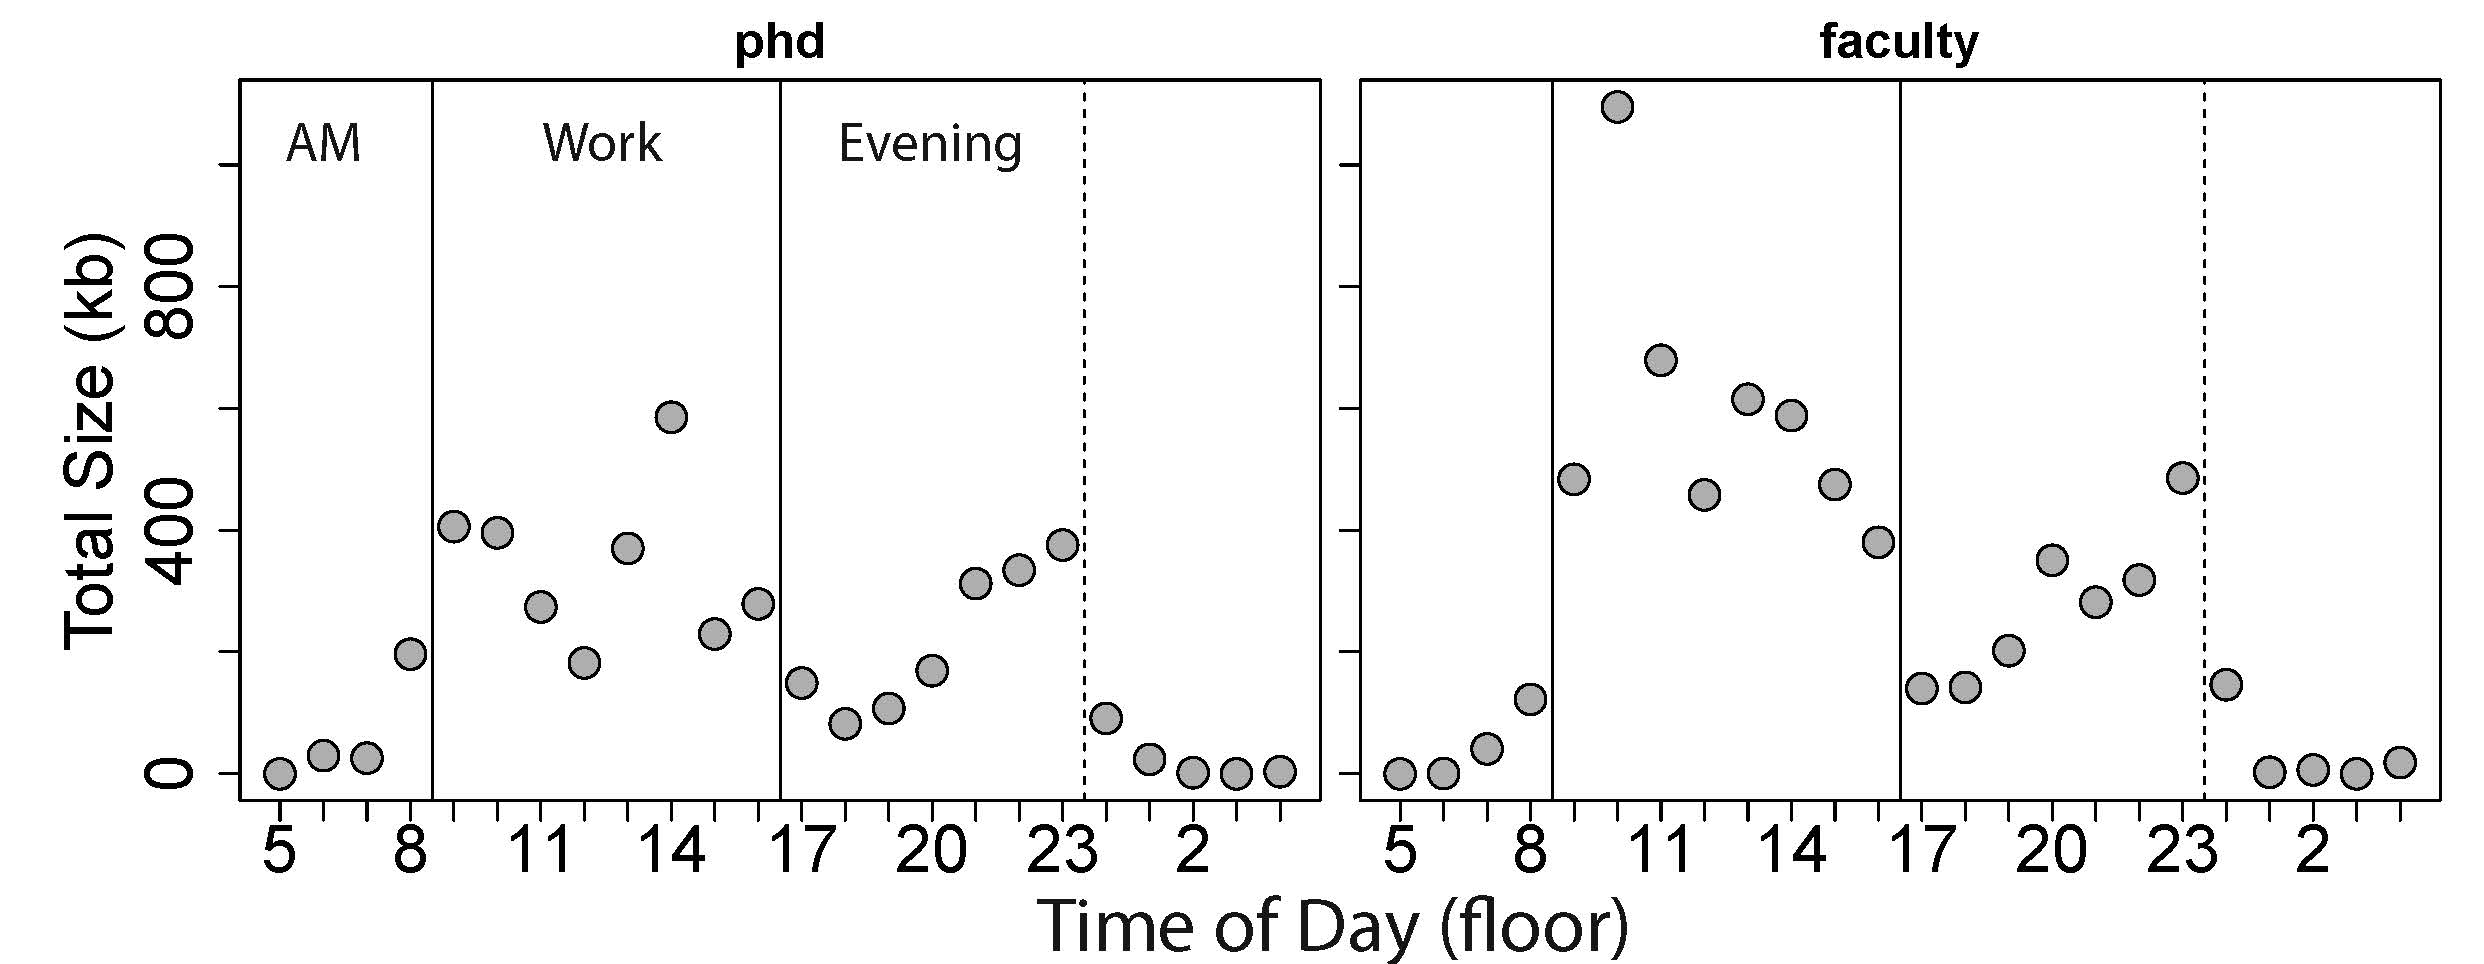 Figure 2: Coding output by hour of day. X-axis starts at 5AM to divide the day into a more temporal order.